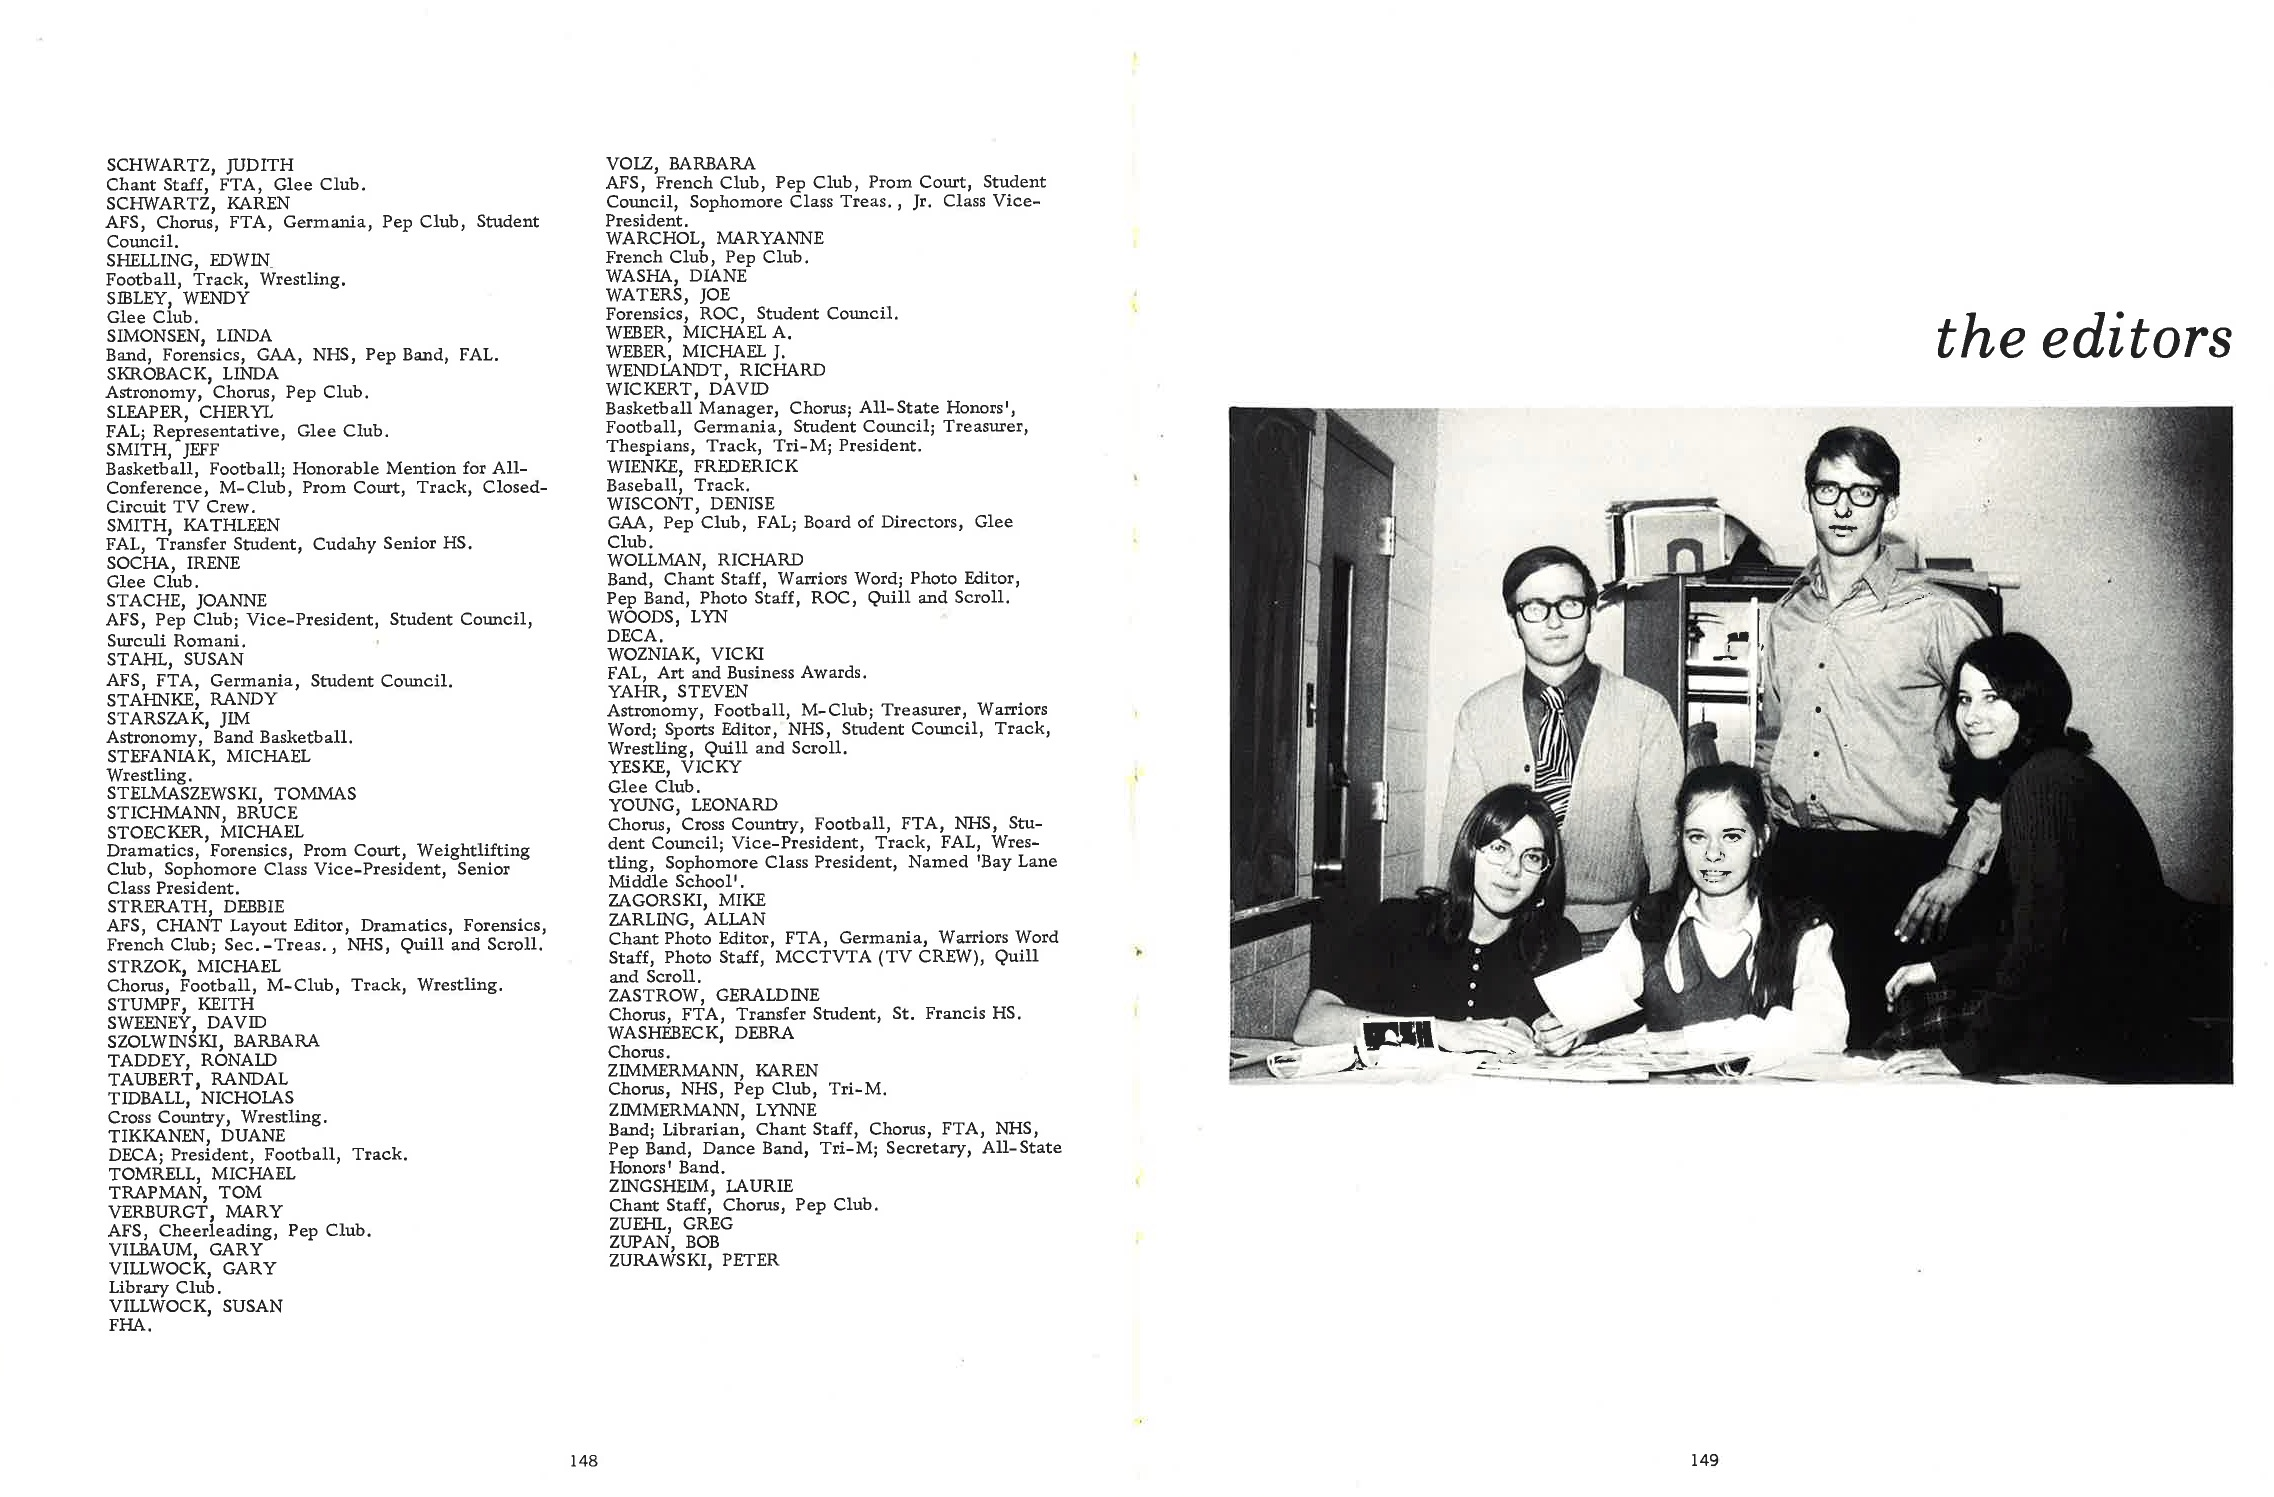 1971_Yearbook_148-149.jpg